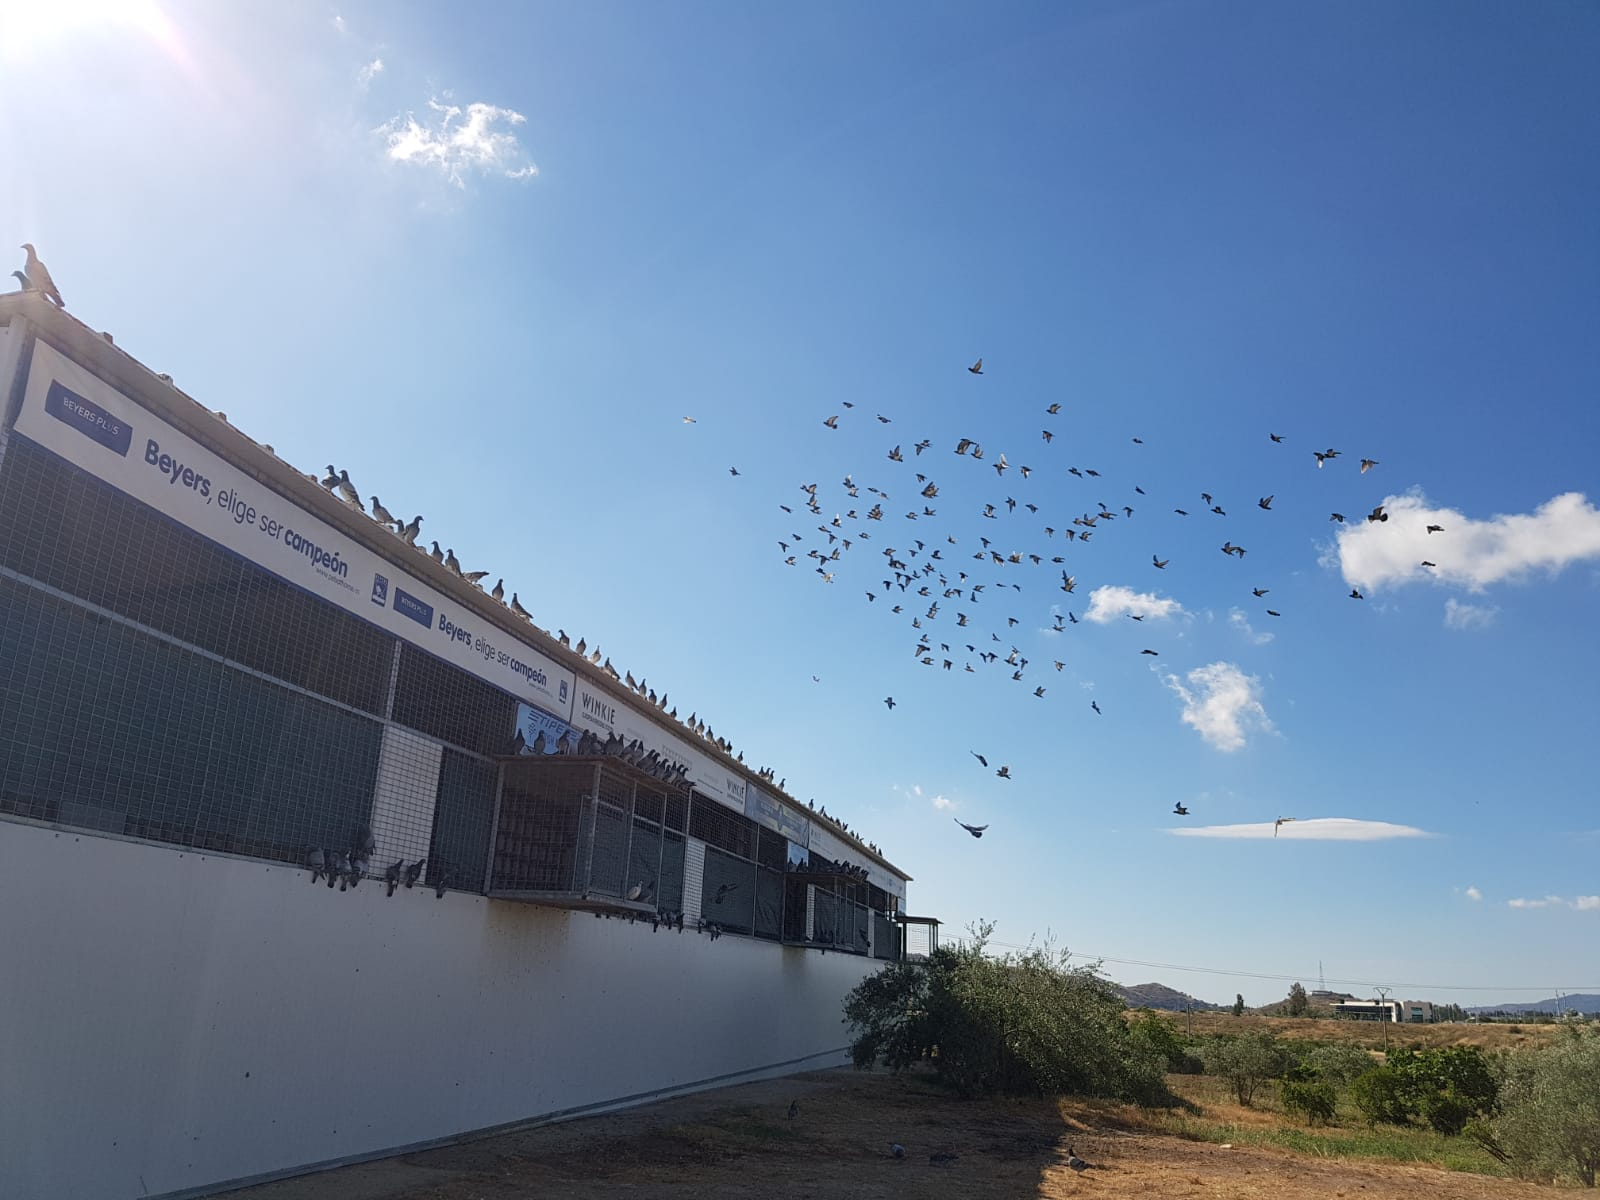 MORE THAN 1,200 PIGEONS ARE ALREADY IN THE COSTA LOFT PREPARED TO LIVE THE COMPETITION OF THE YEAR